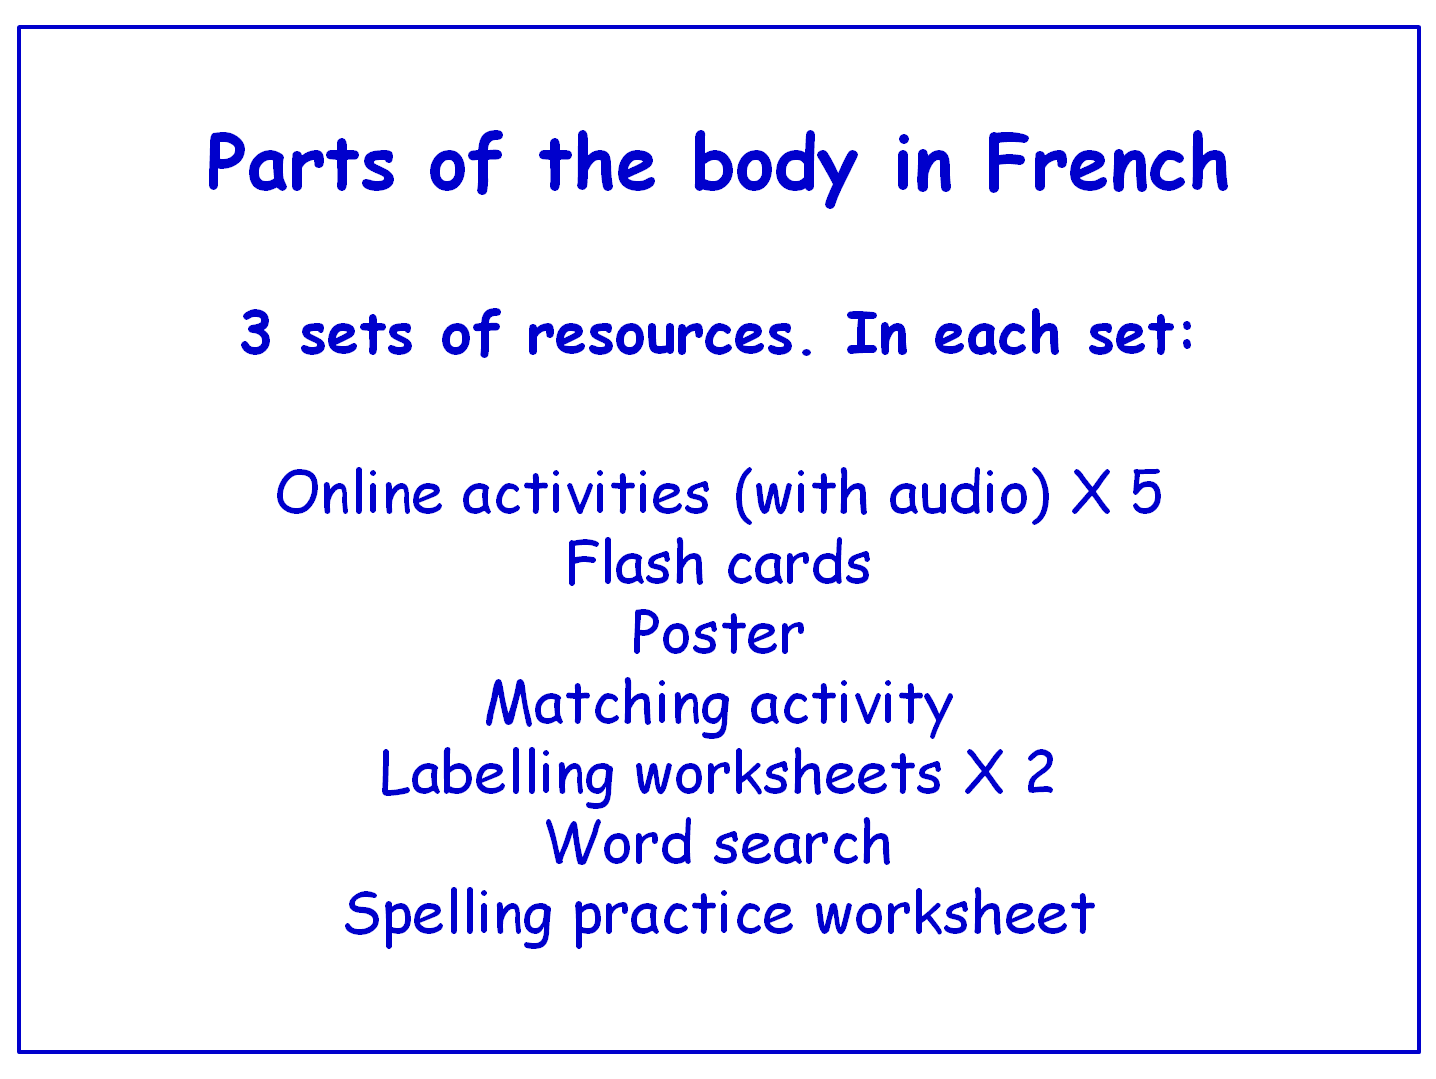 Parts of the Body in French  Worksheets, Games, Activities and Flash Cards (with audio) Bundle (3 sets)